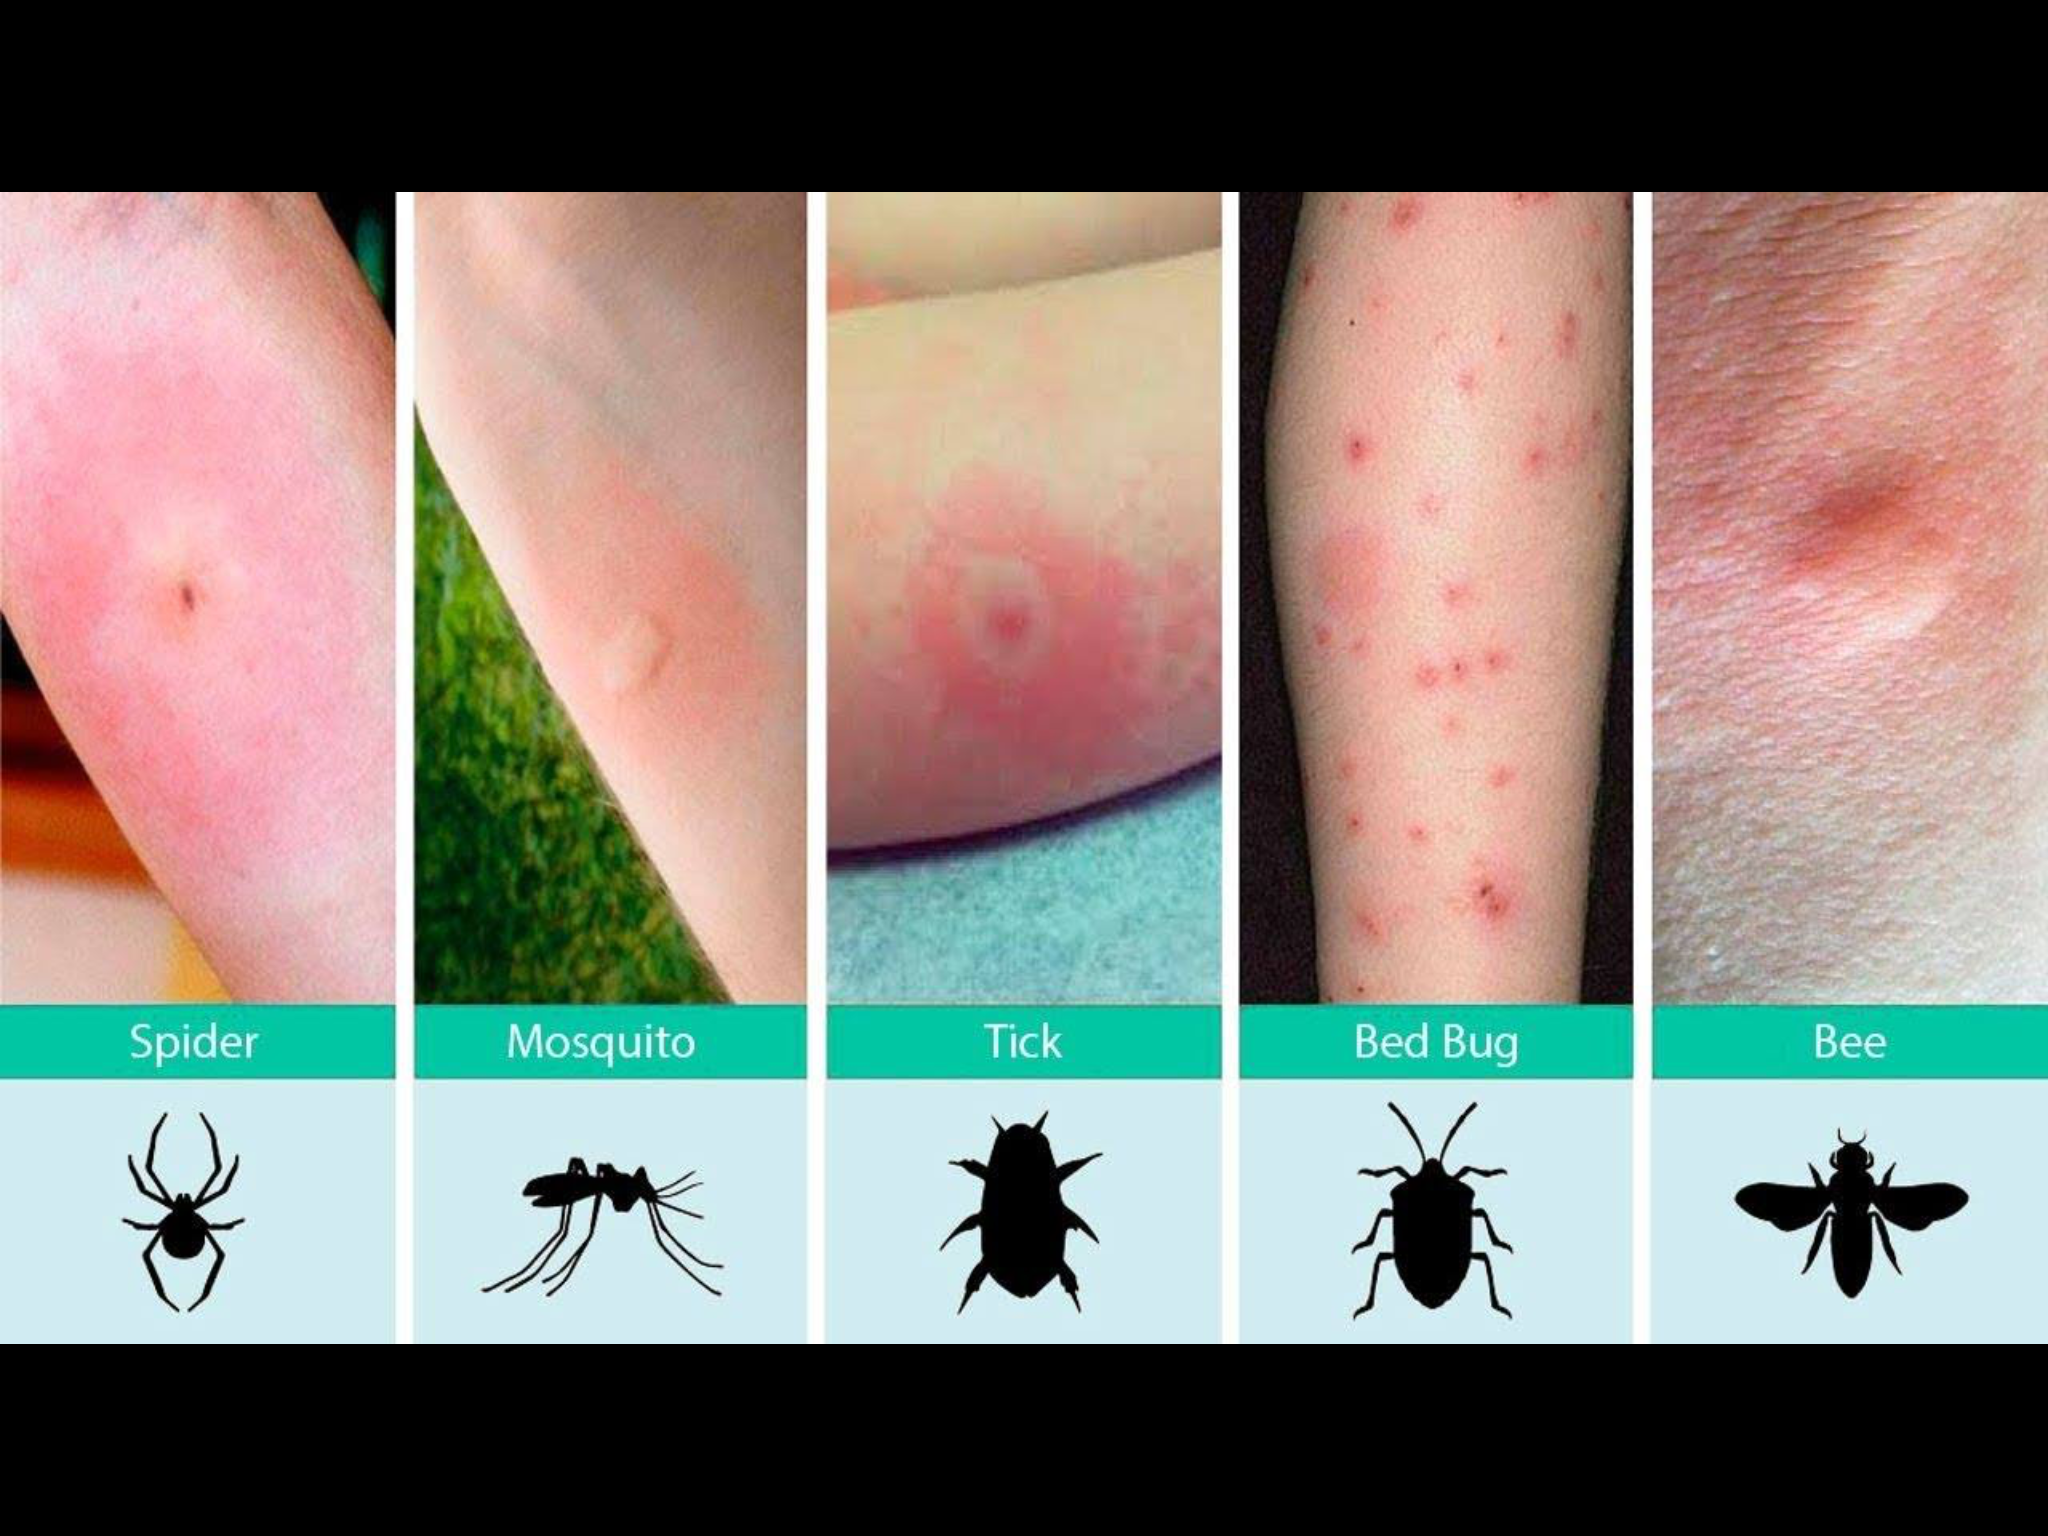 Pin By Merry Hamrick On Health Medical Bed Bug Bites Bug Bites Bed Bugs